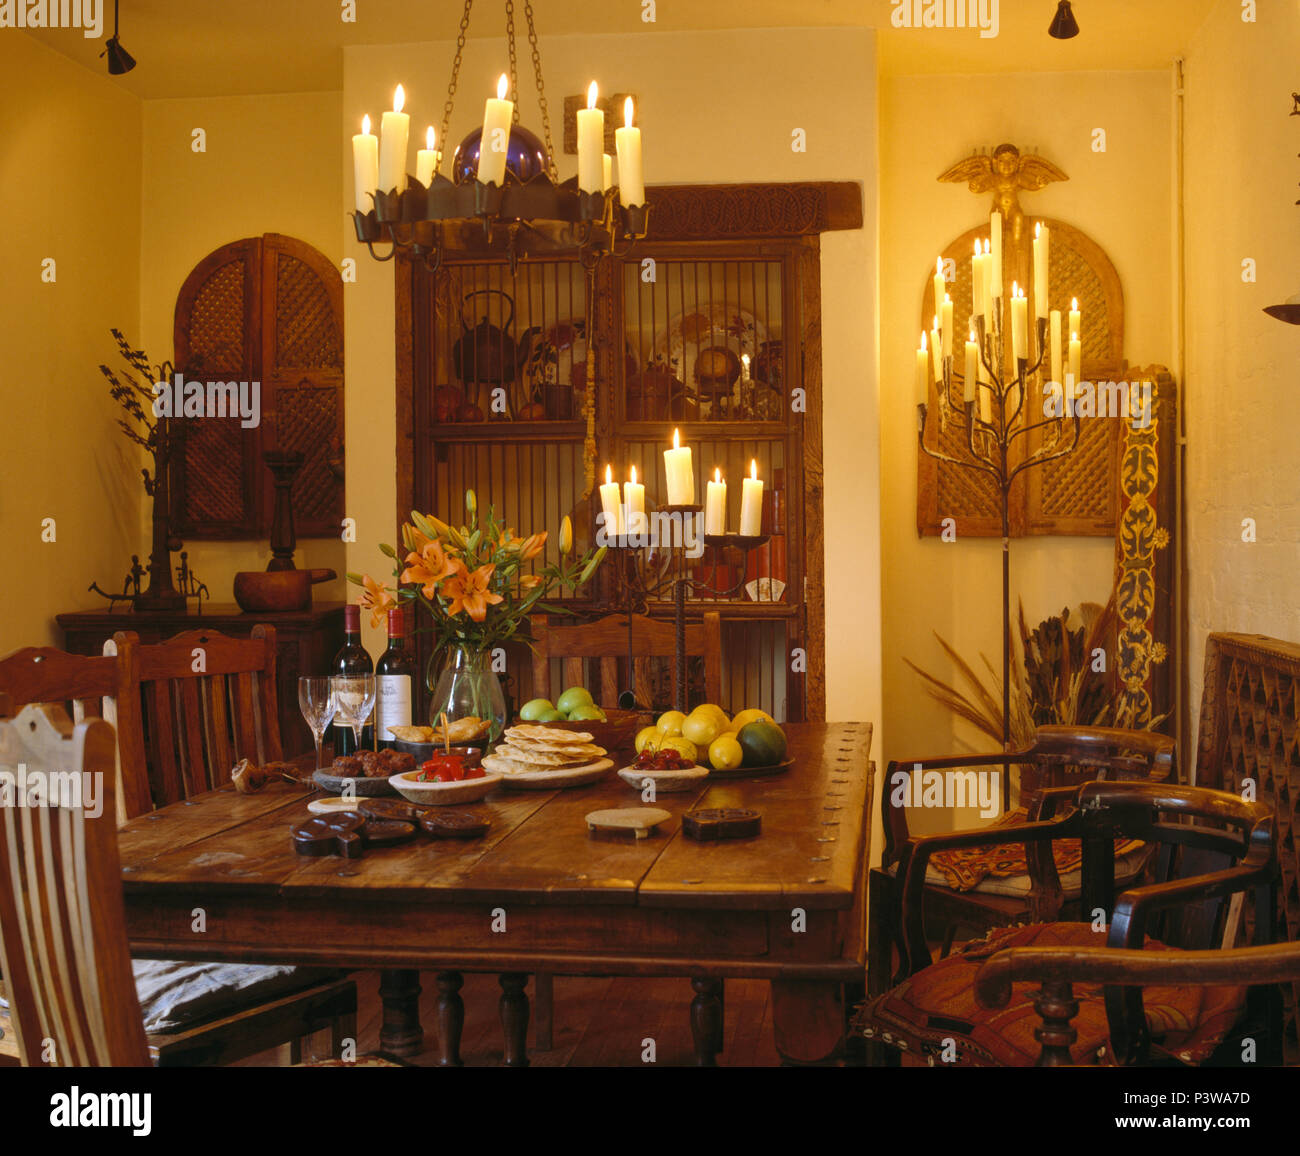 Fabulous Lighted Candles In Chandelier Above Table In Country Dining Download Free Architecture Designs Crovemadebymaigaardcom